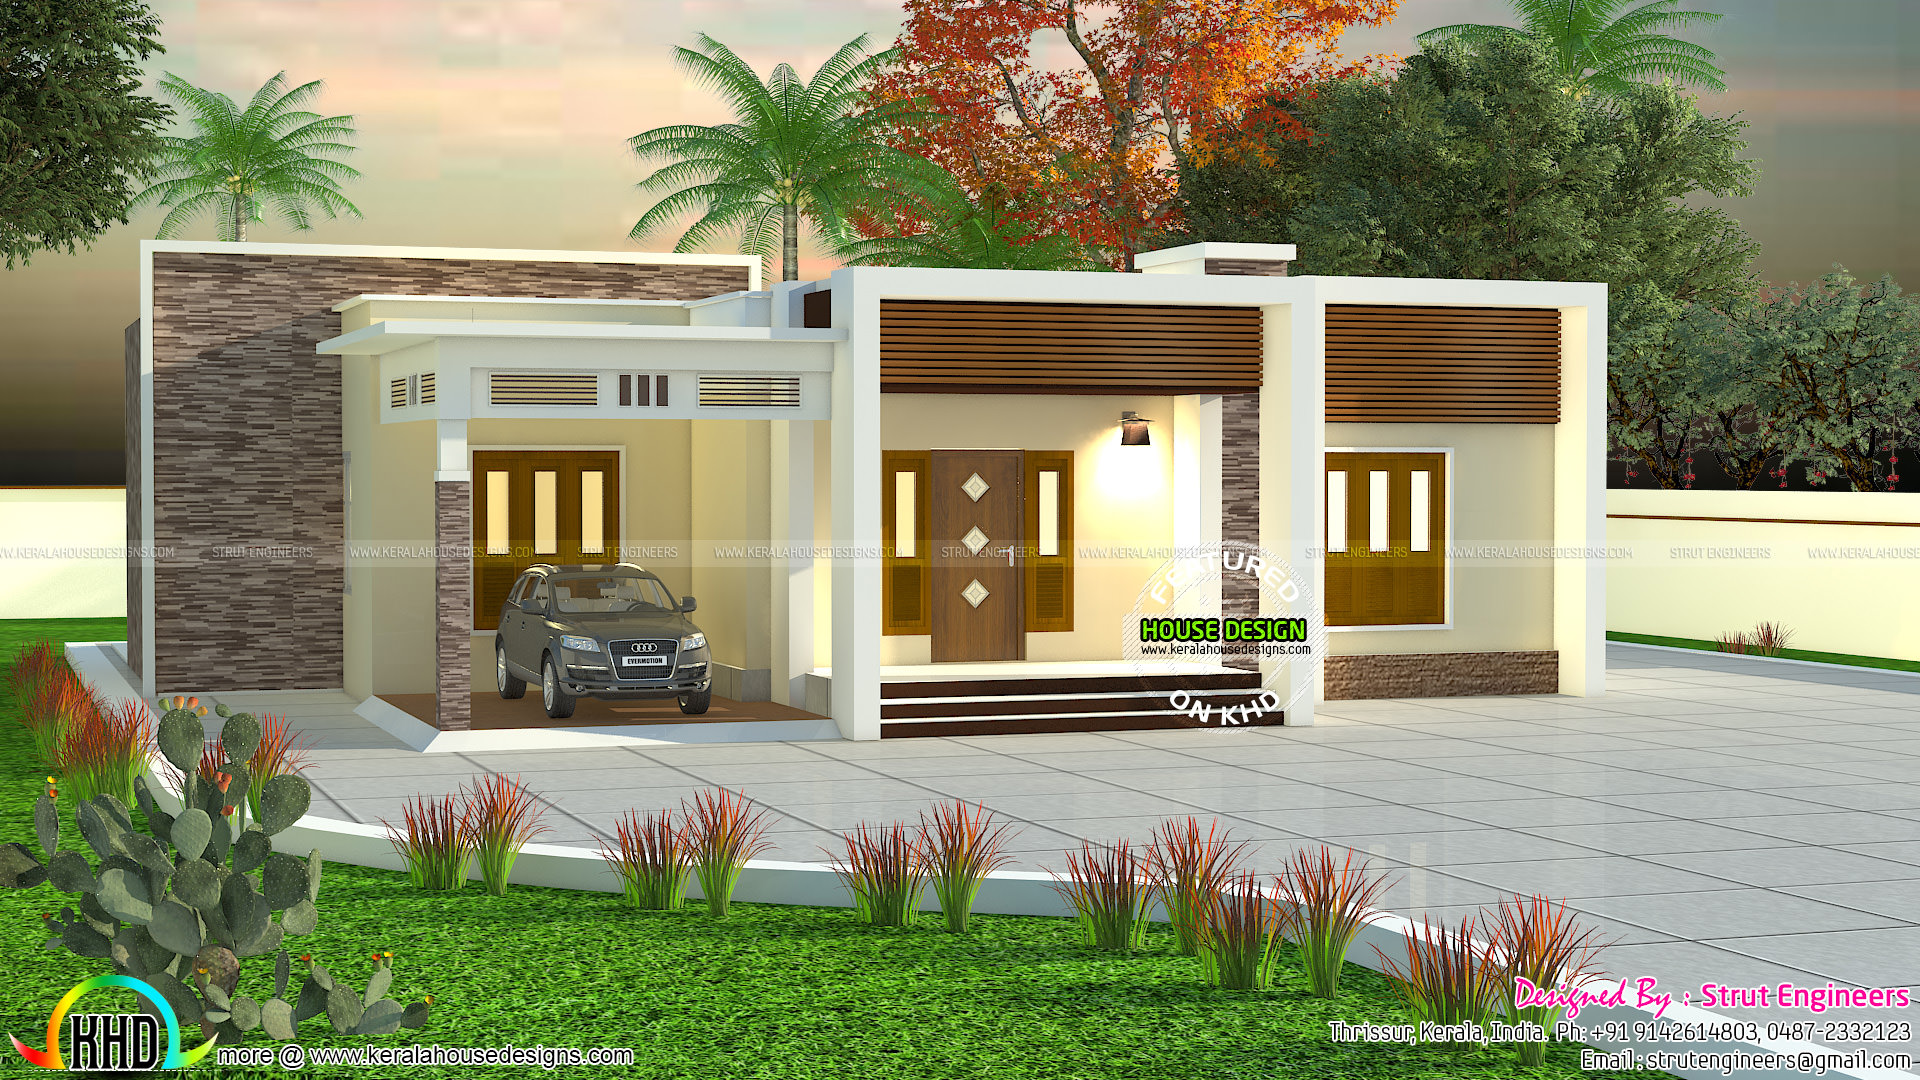 900 Sq Ft 2 Bhk Flat Roof House Kerala Home Design And